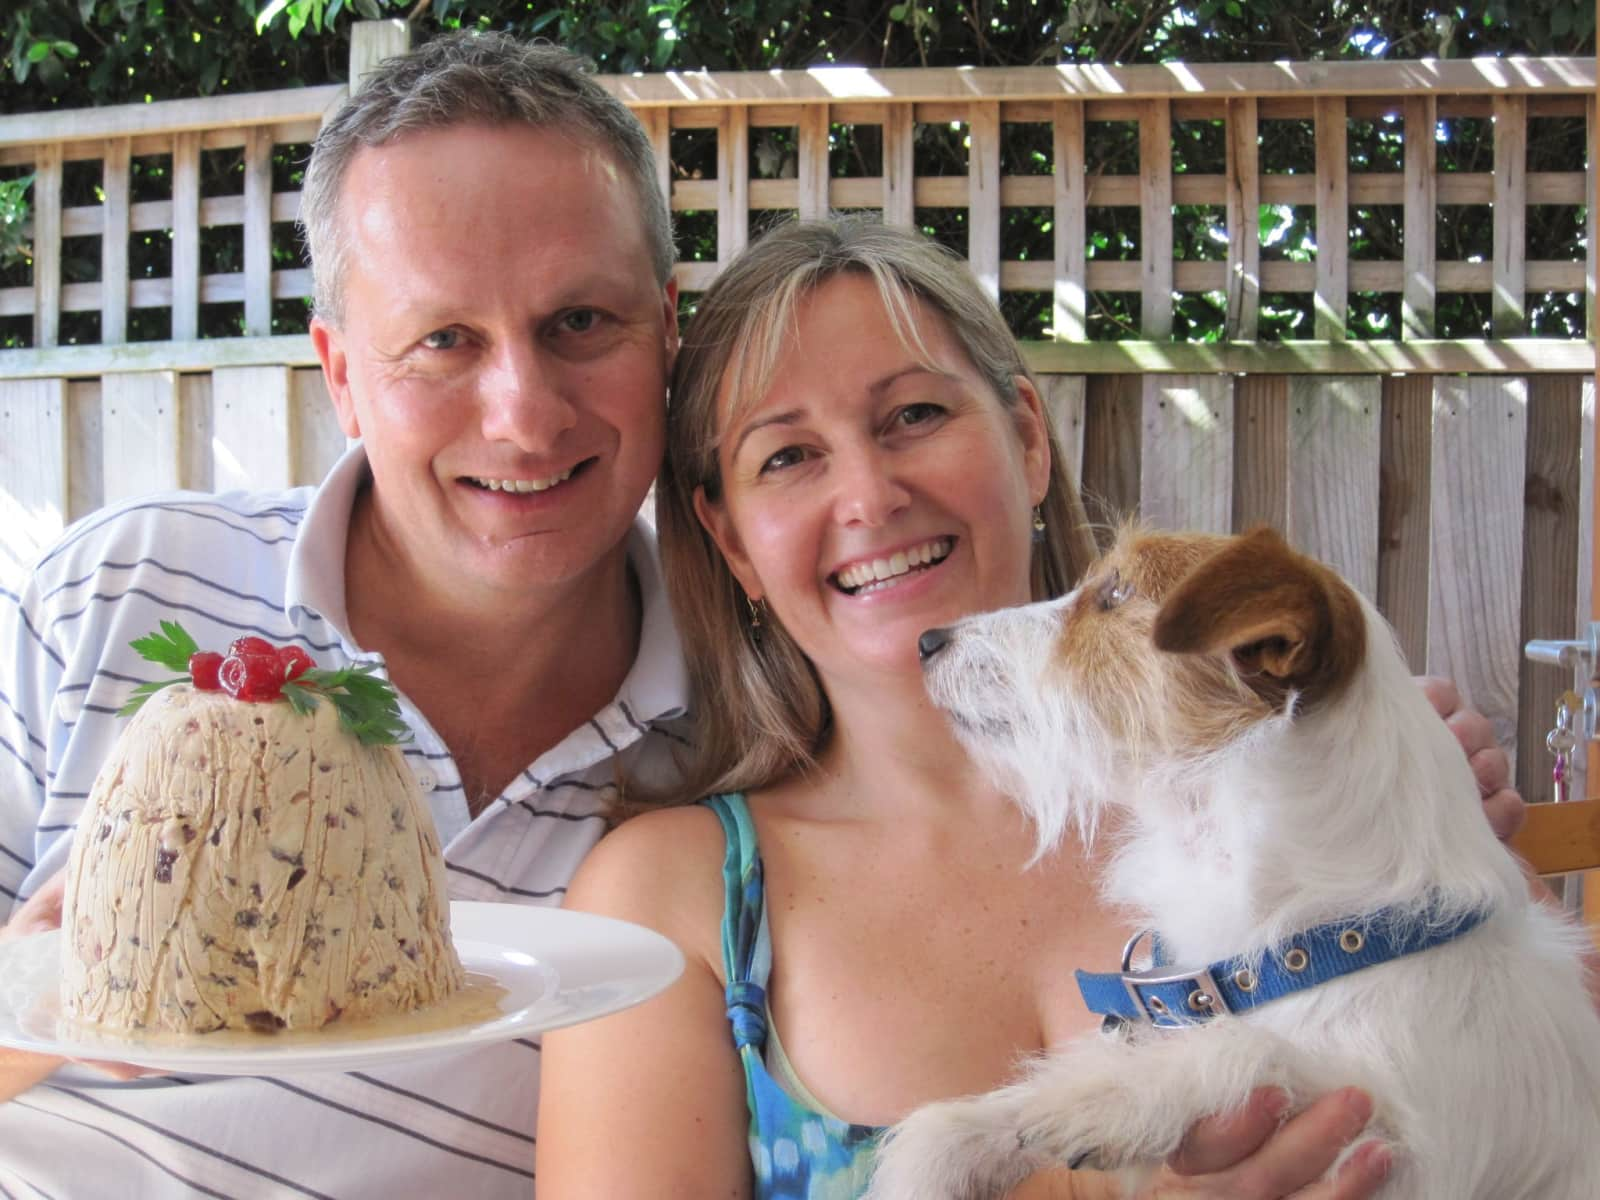 Susie & Tim from Manly, New South Wales, Australia